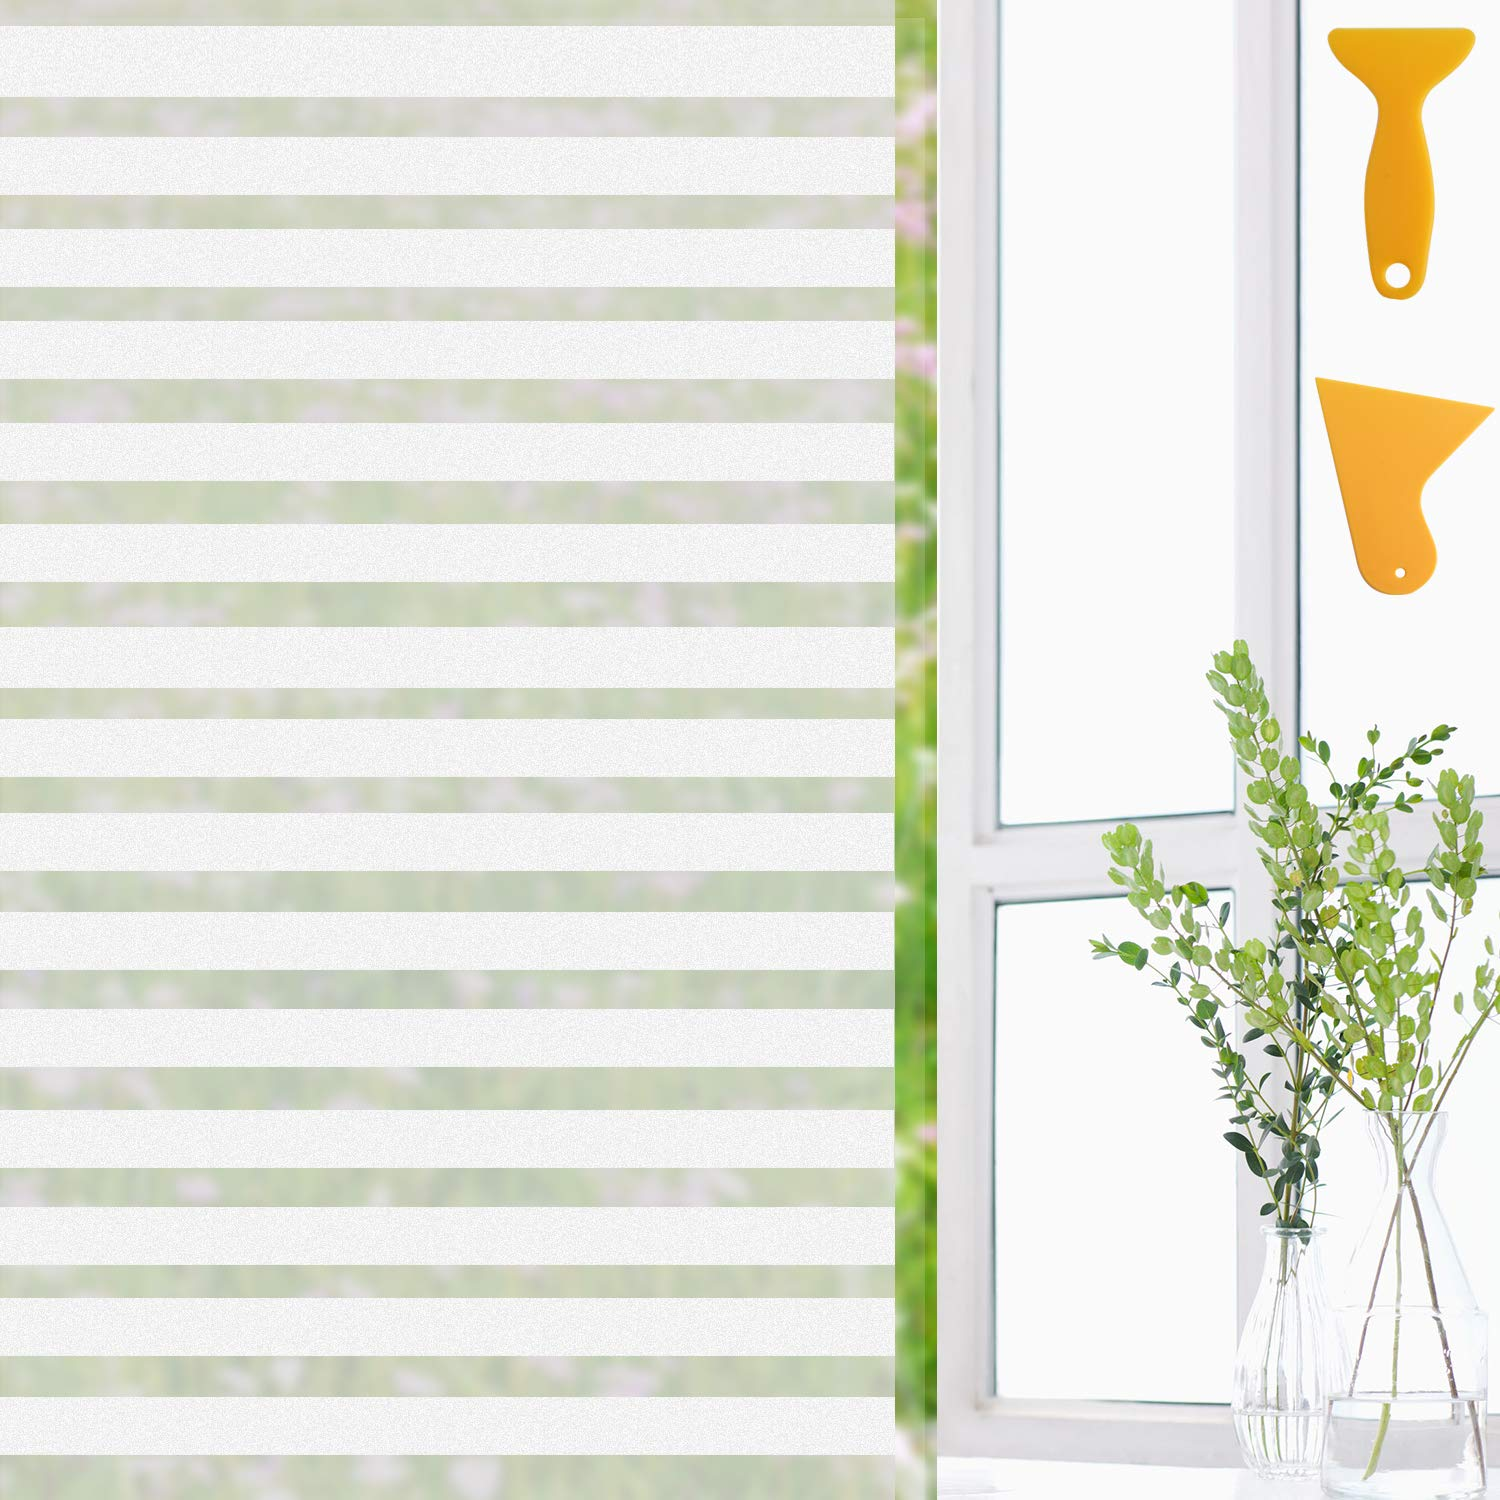 Defrsk Privacy Window Film Static Cling Stripe Pattern Frosted Window Film UV Protection Window Sticker Heat Reflective Self adhesive For Office Bathroom Living Room Kitchen Home Decoration 45 * 400cm with 2 Film Tools